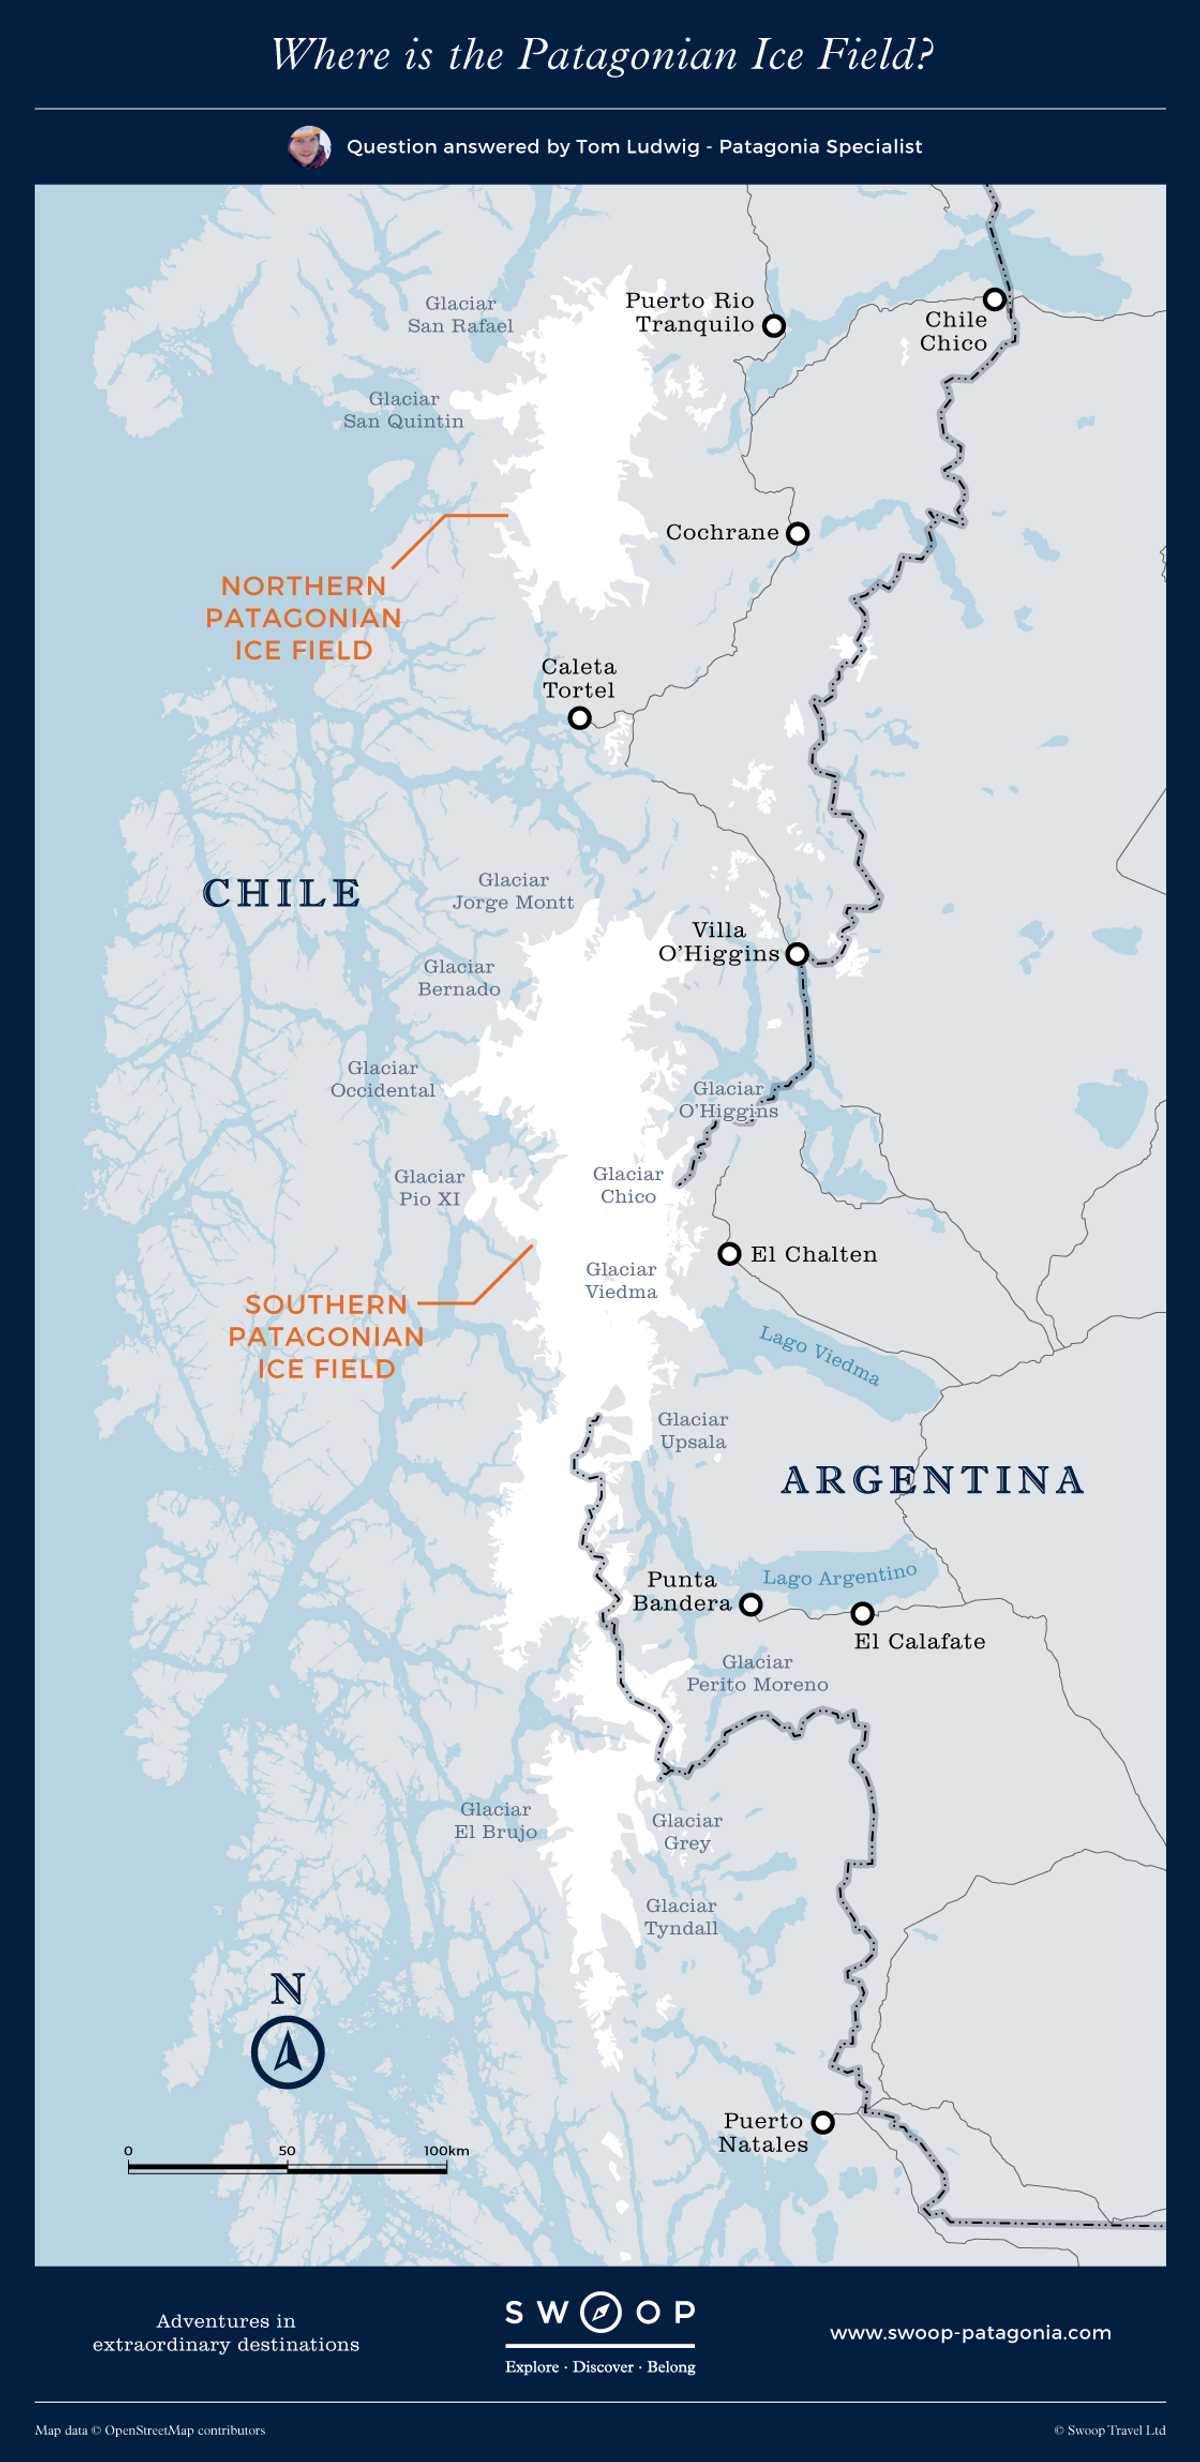 SWO_5_MAP_ALL_Where-is-the-Patagonian-Ice-Field